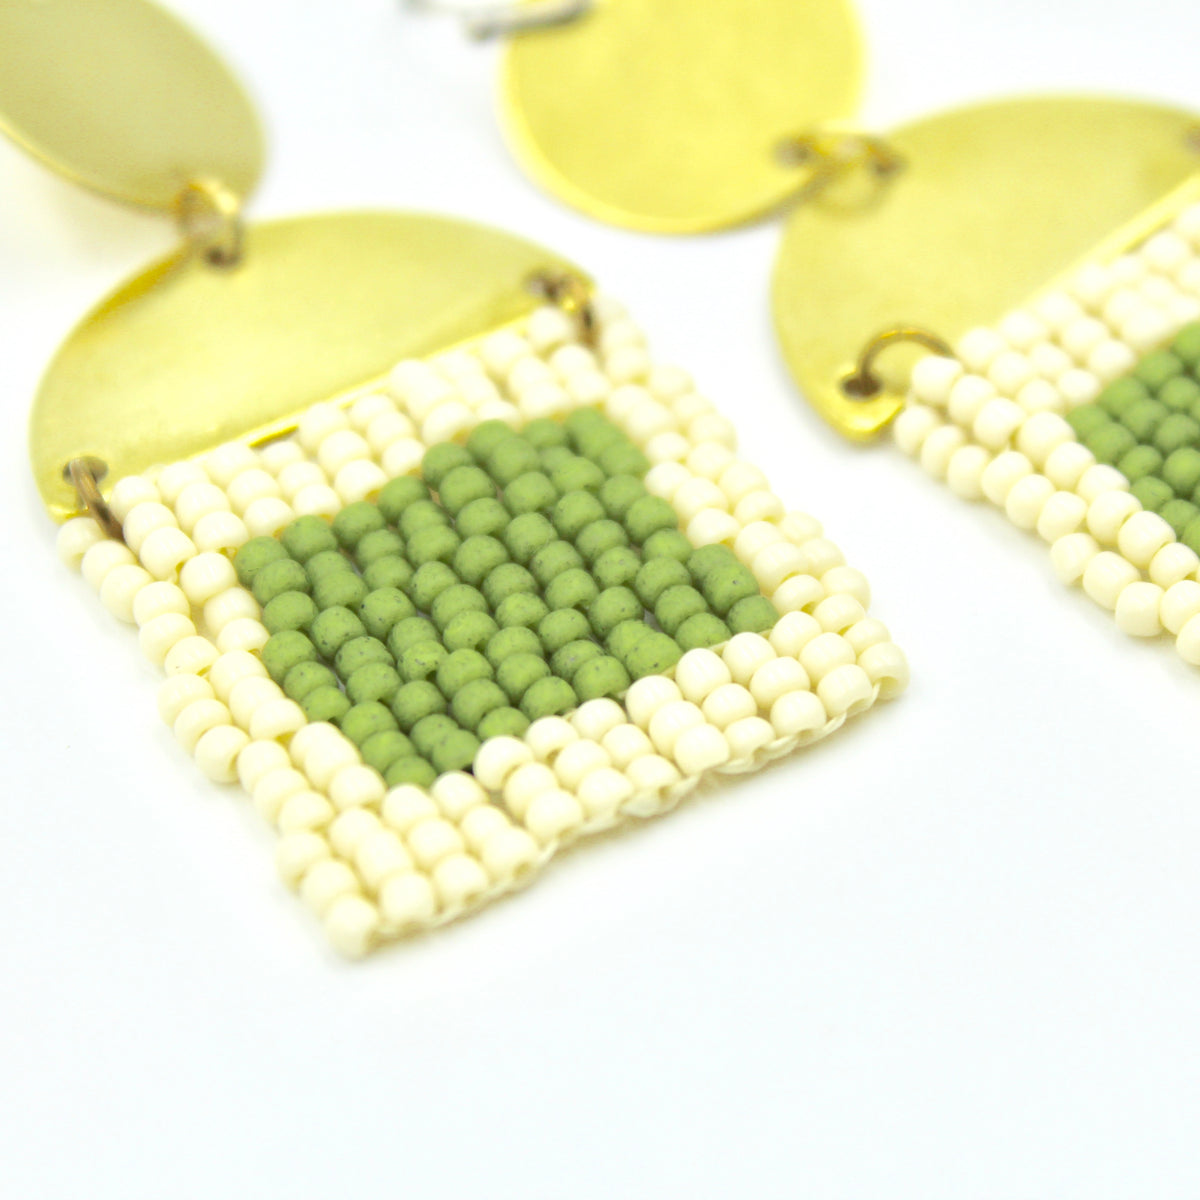 Sonia Earrings - Woven Seed Beads